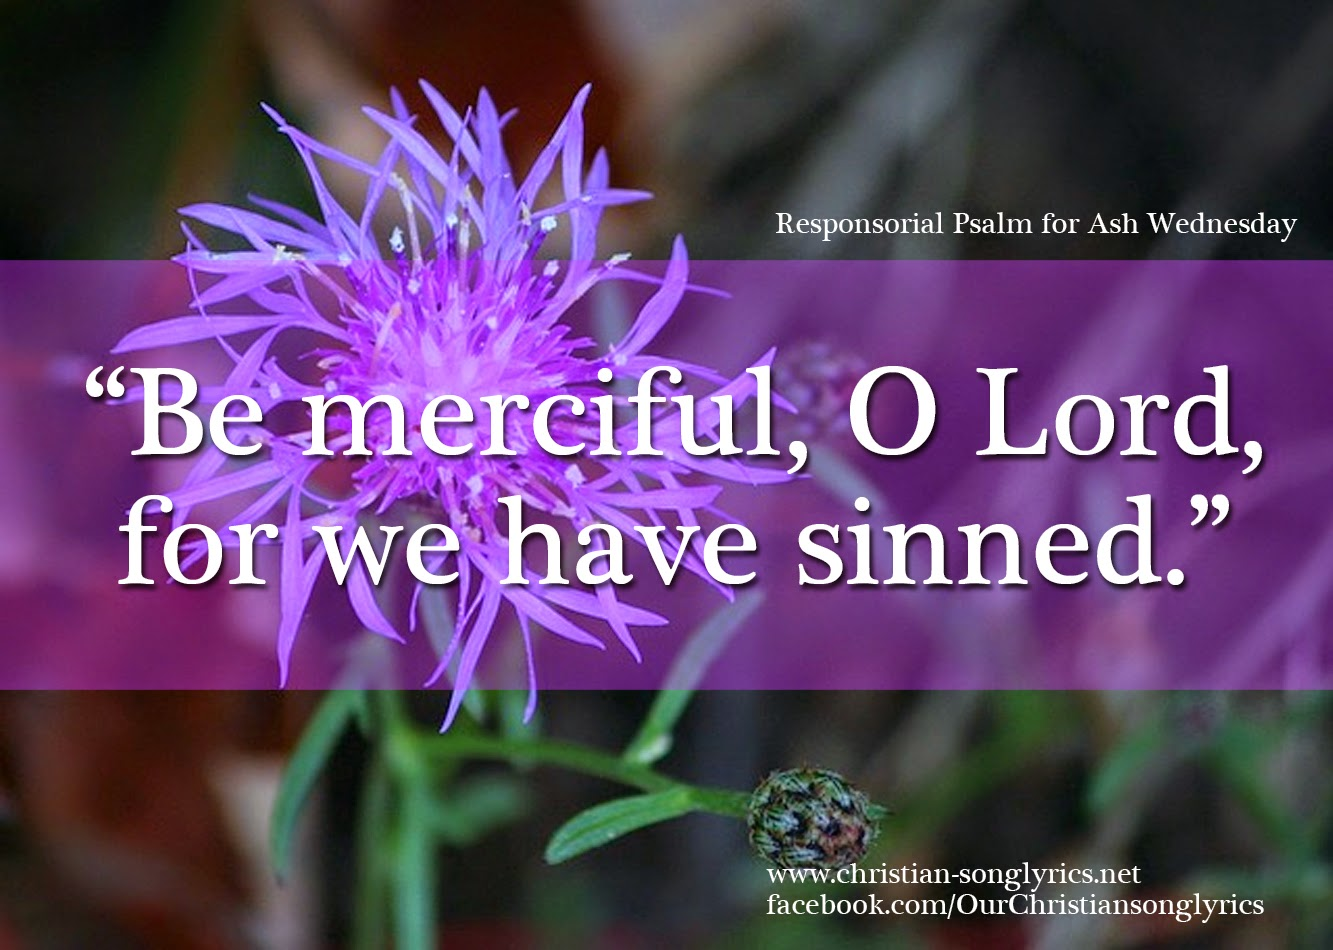 Be Merciful, O Lord, for we have sinned.